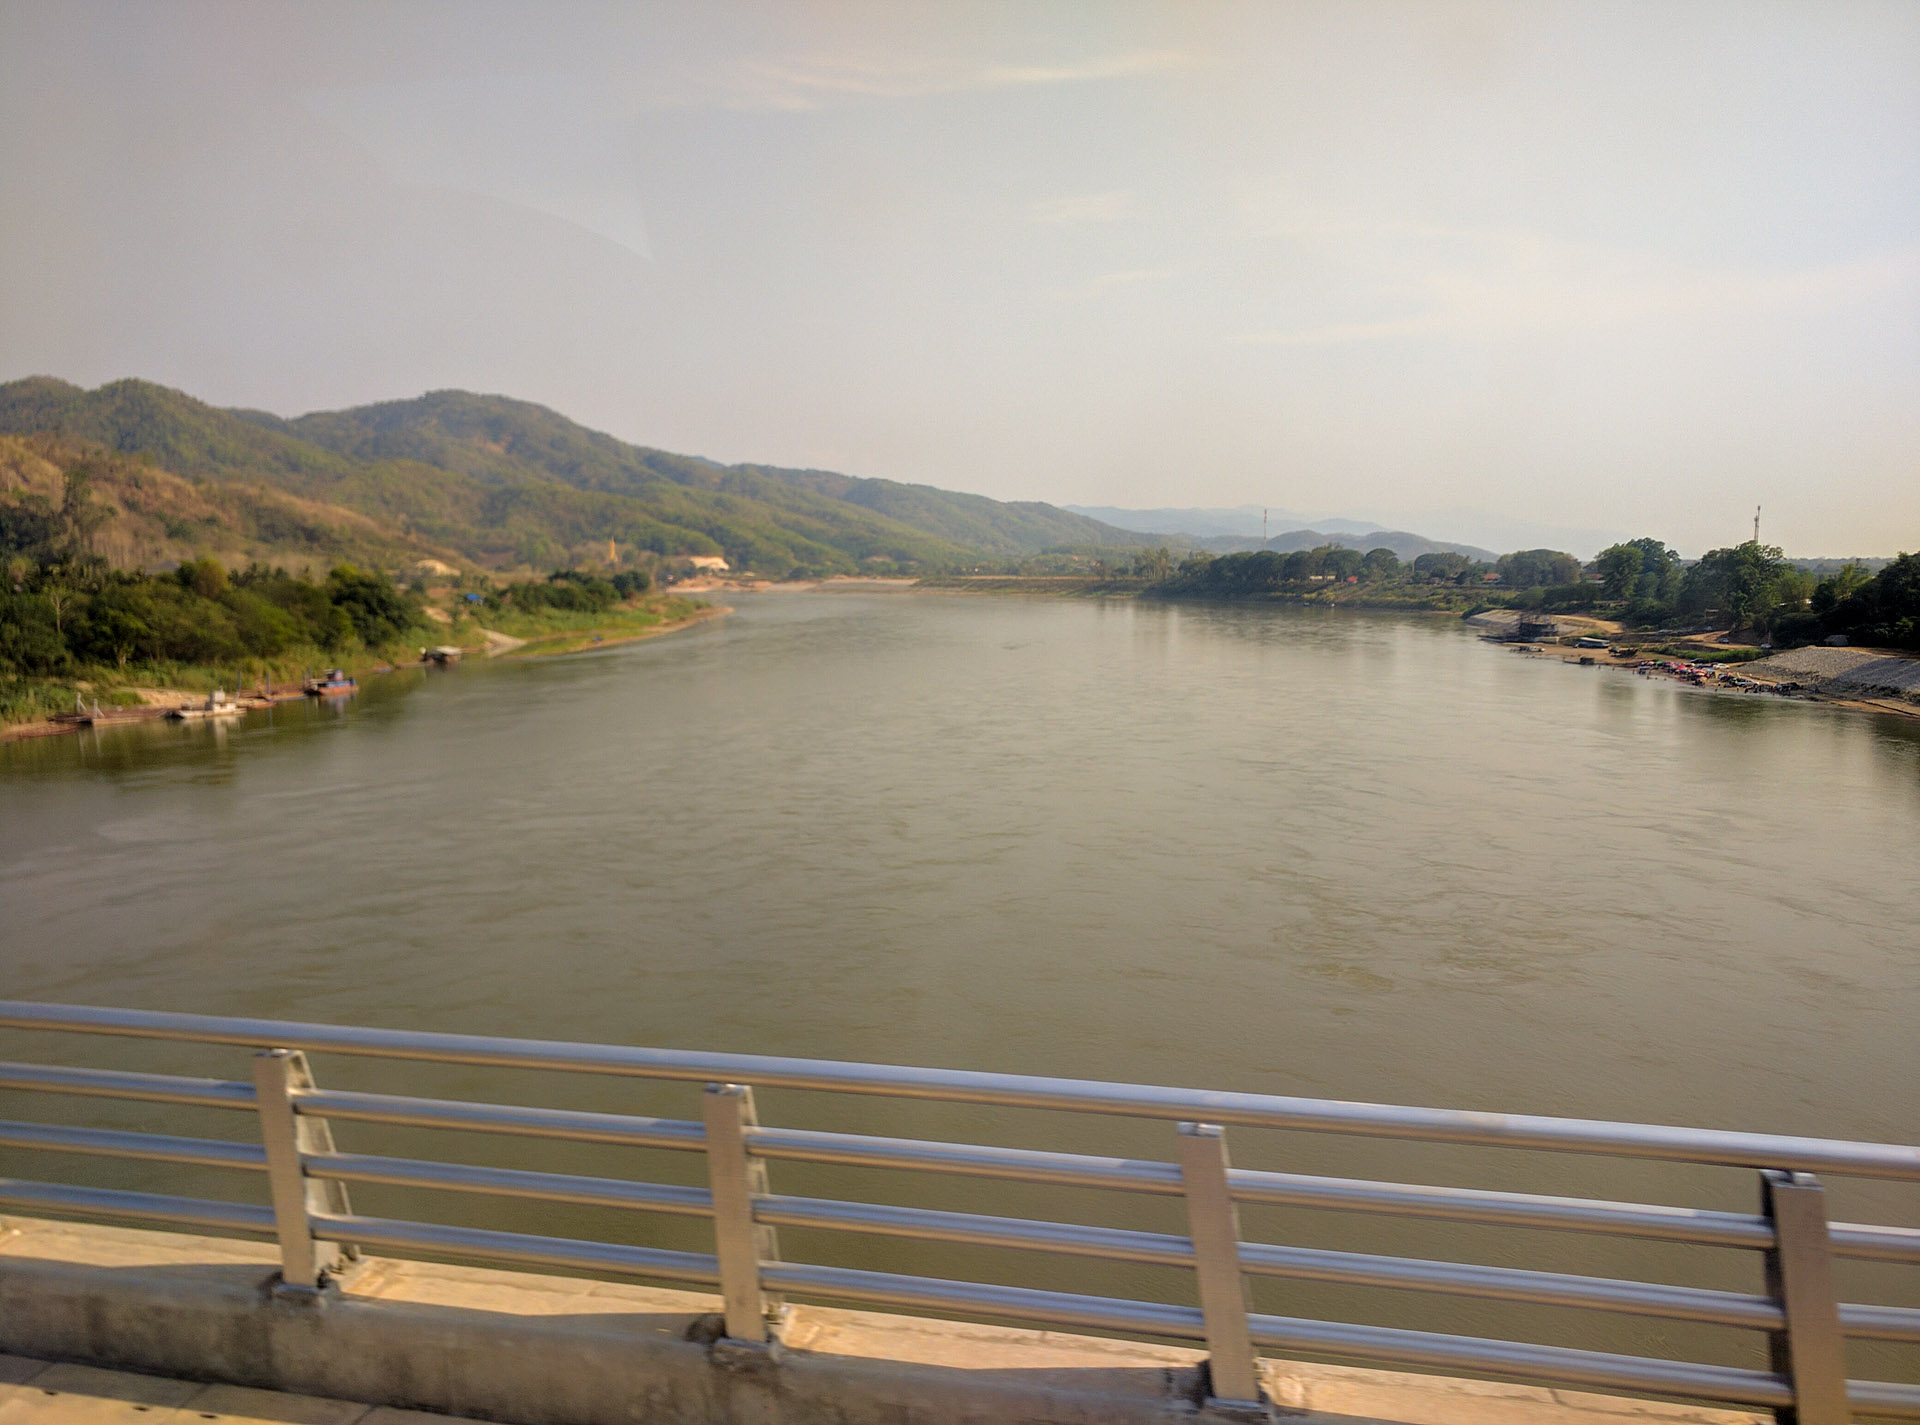 Friendship Bridge (Thailand-Laos)